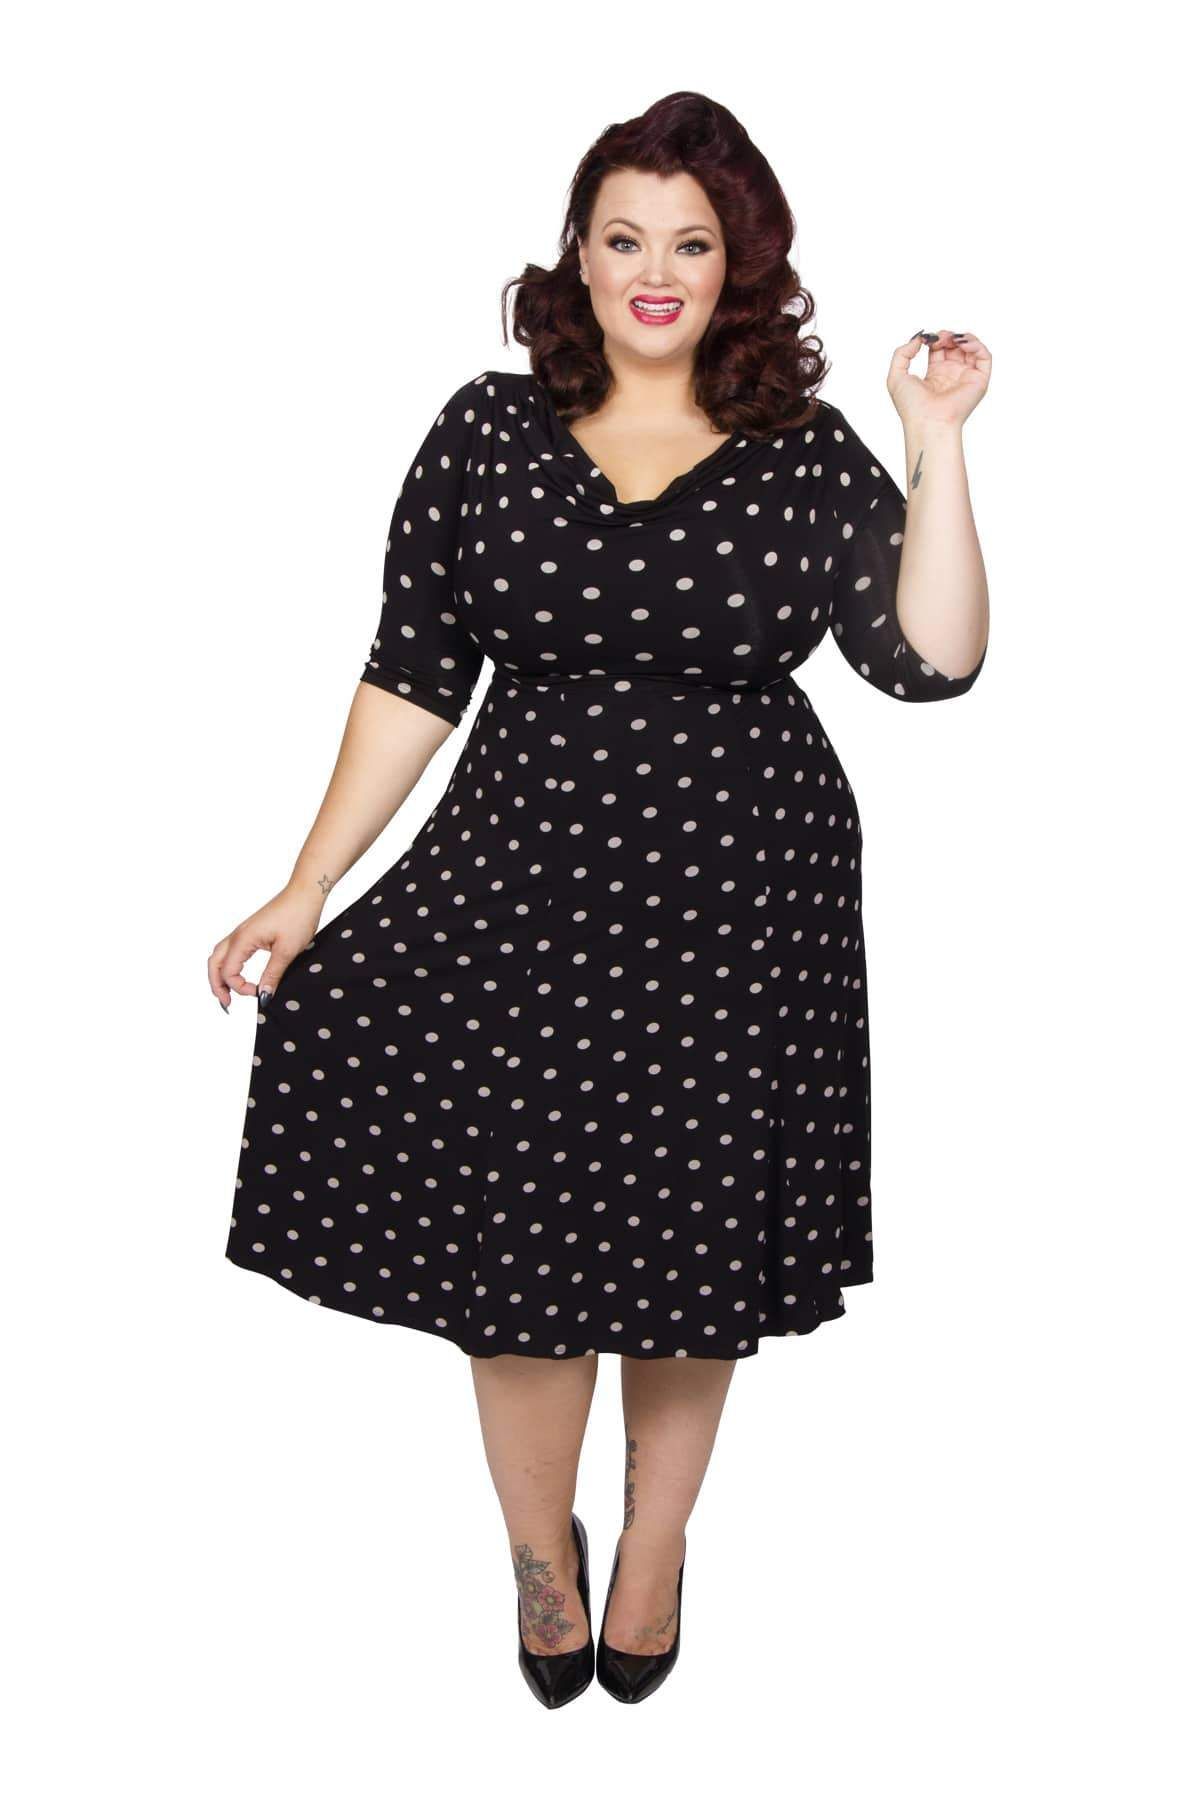 1940s Plus Size Dresses | Swing Dress, Tea Dress Lollidot Cowl Neck 40s Dress - BlackWhite  12 £60.00 AT vintagedancer.com